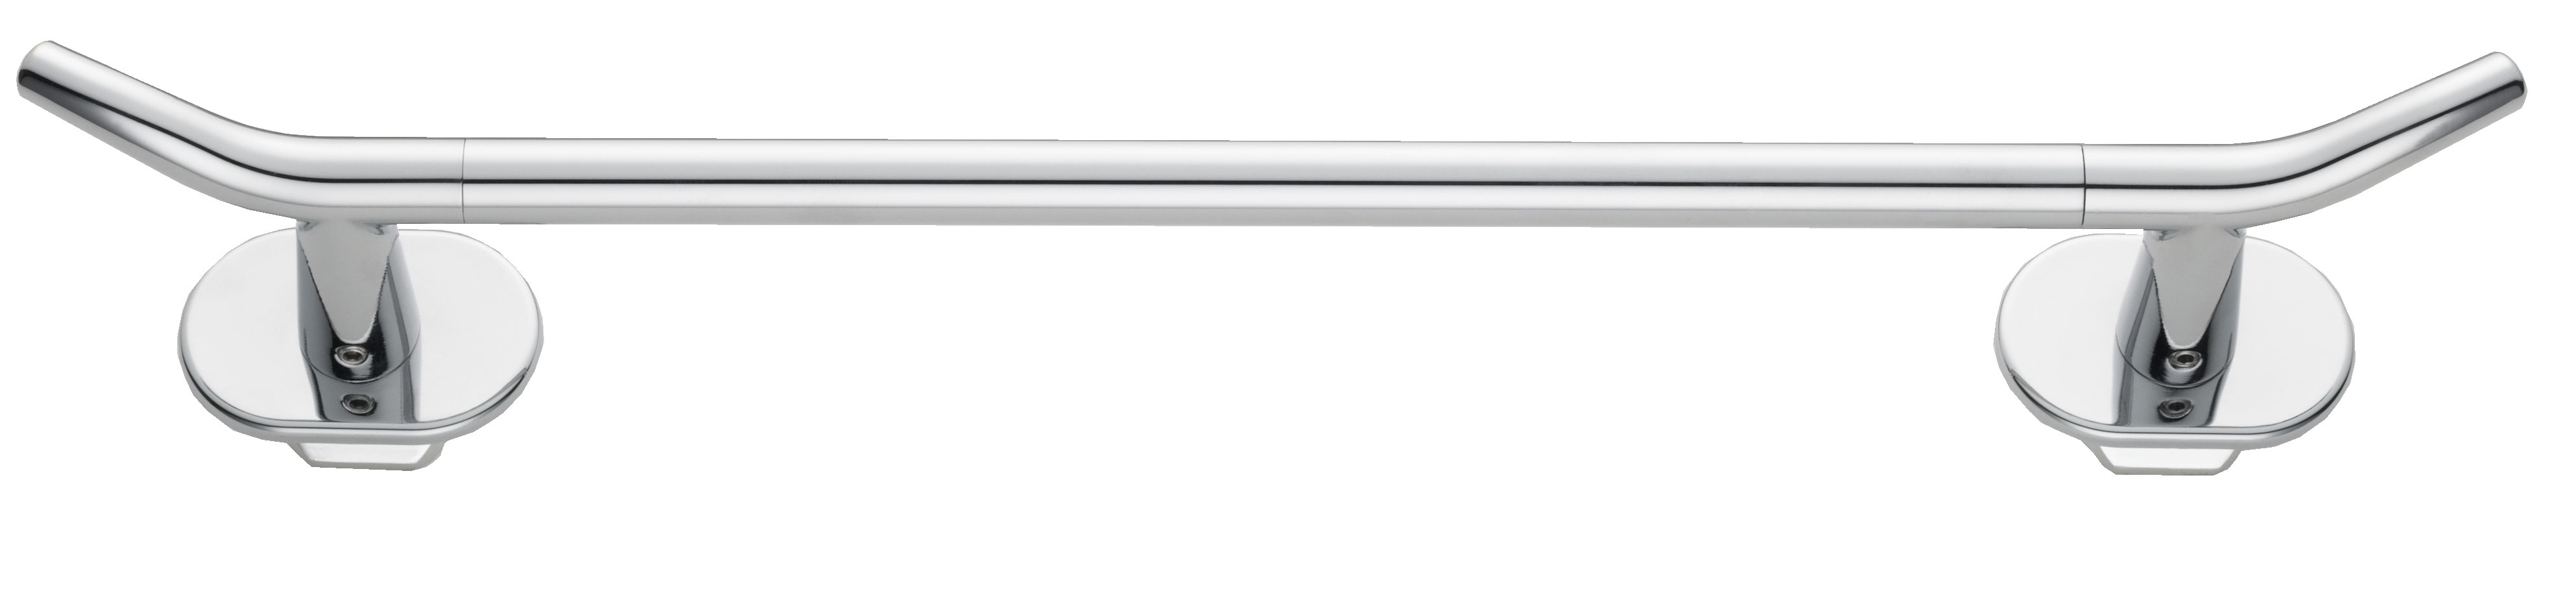 click on Towel Bar image to enlarge